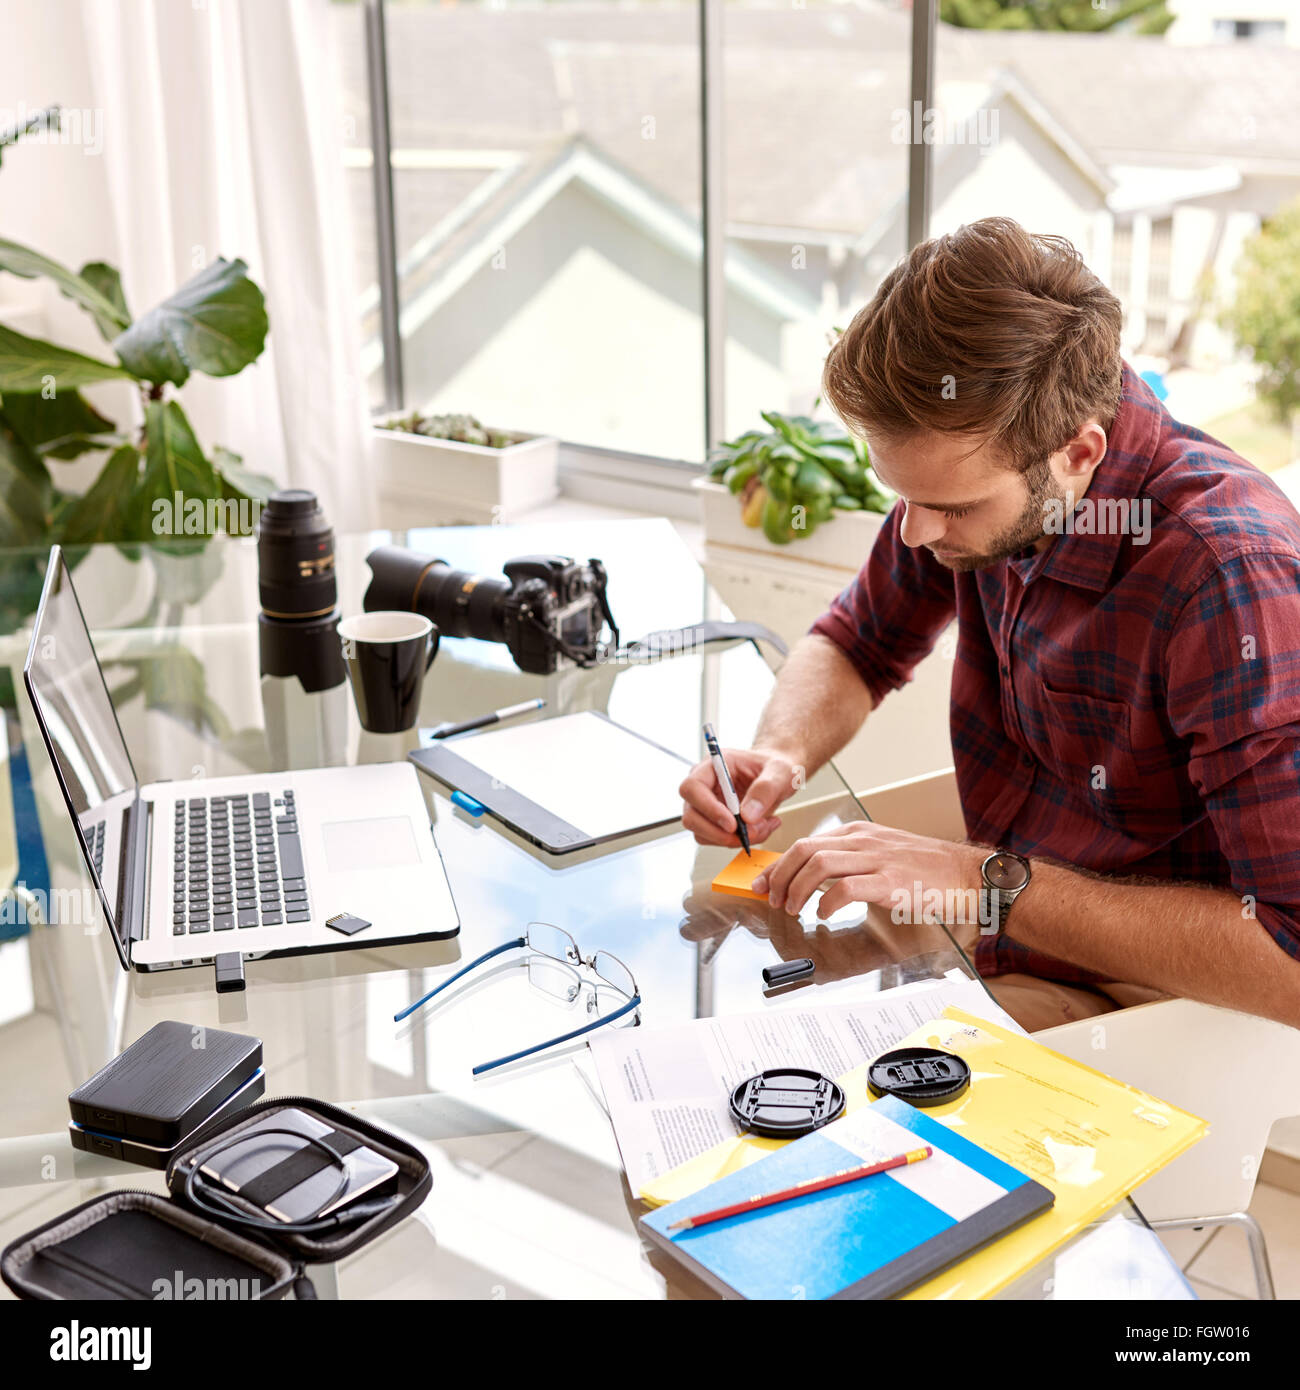 Square crop image of an entrepreneur busy working - Stock Image